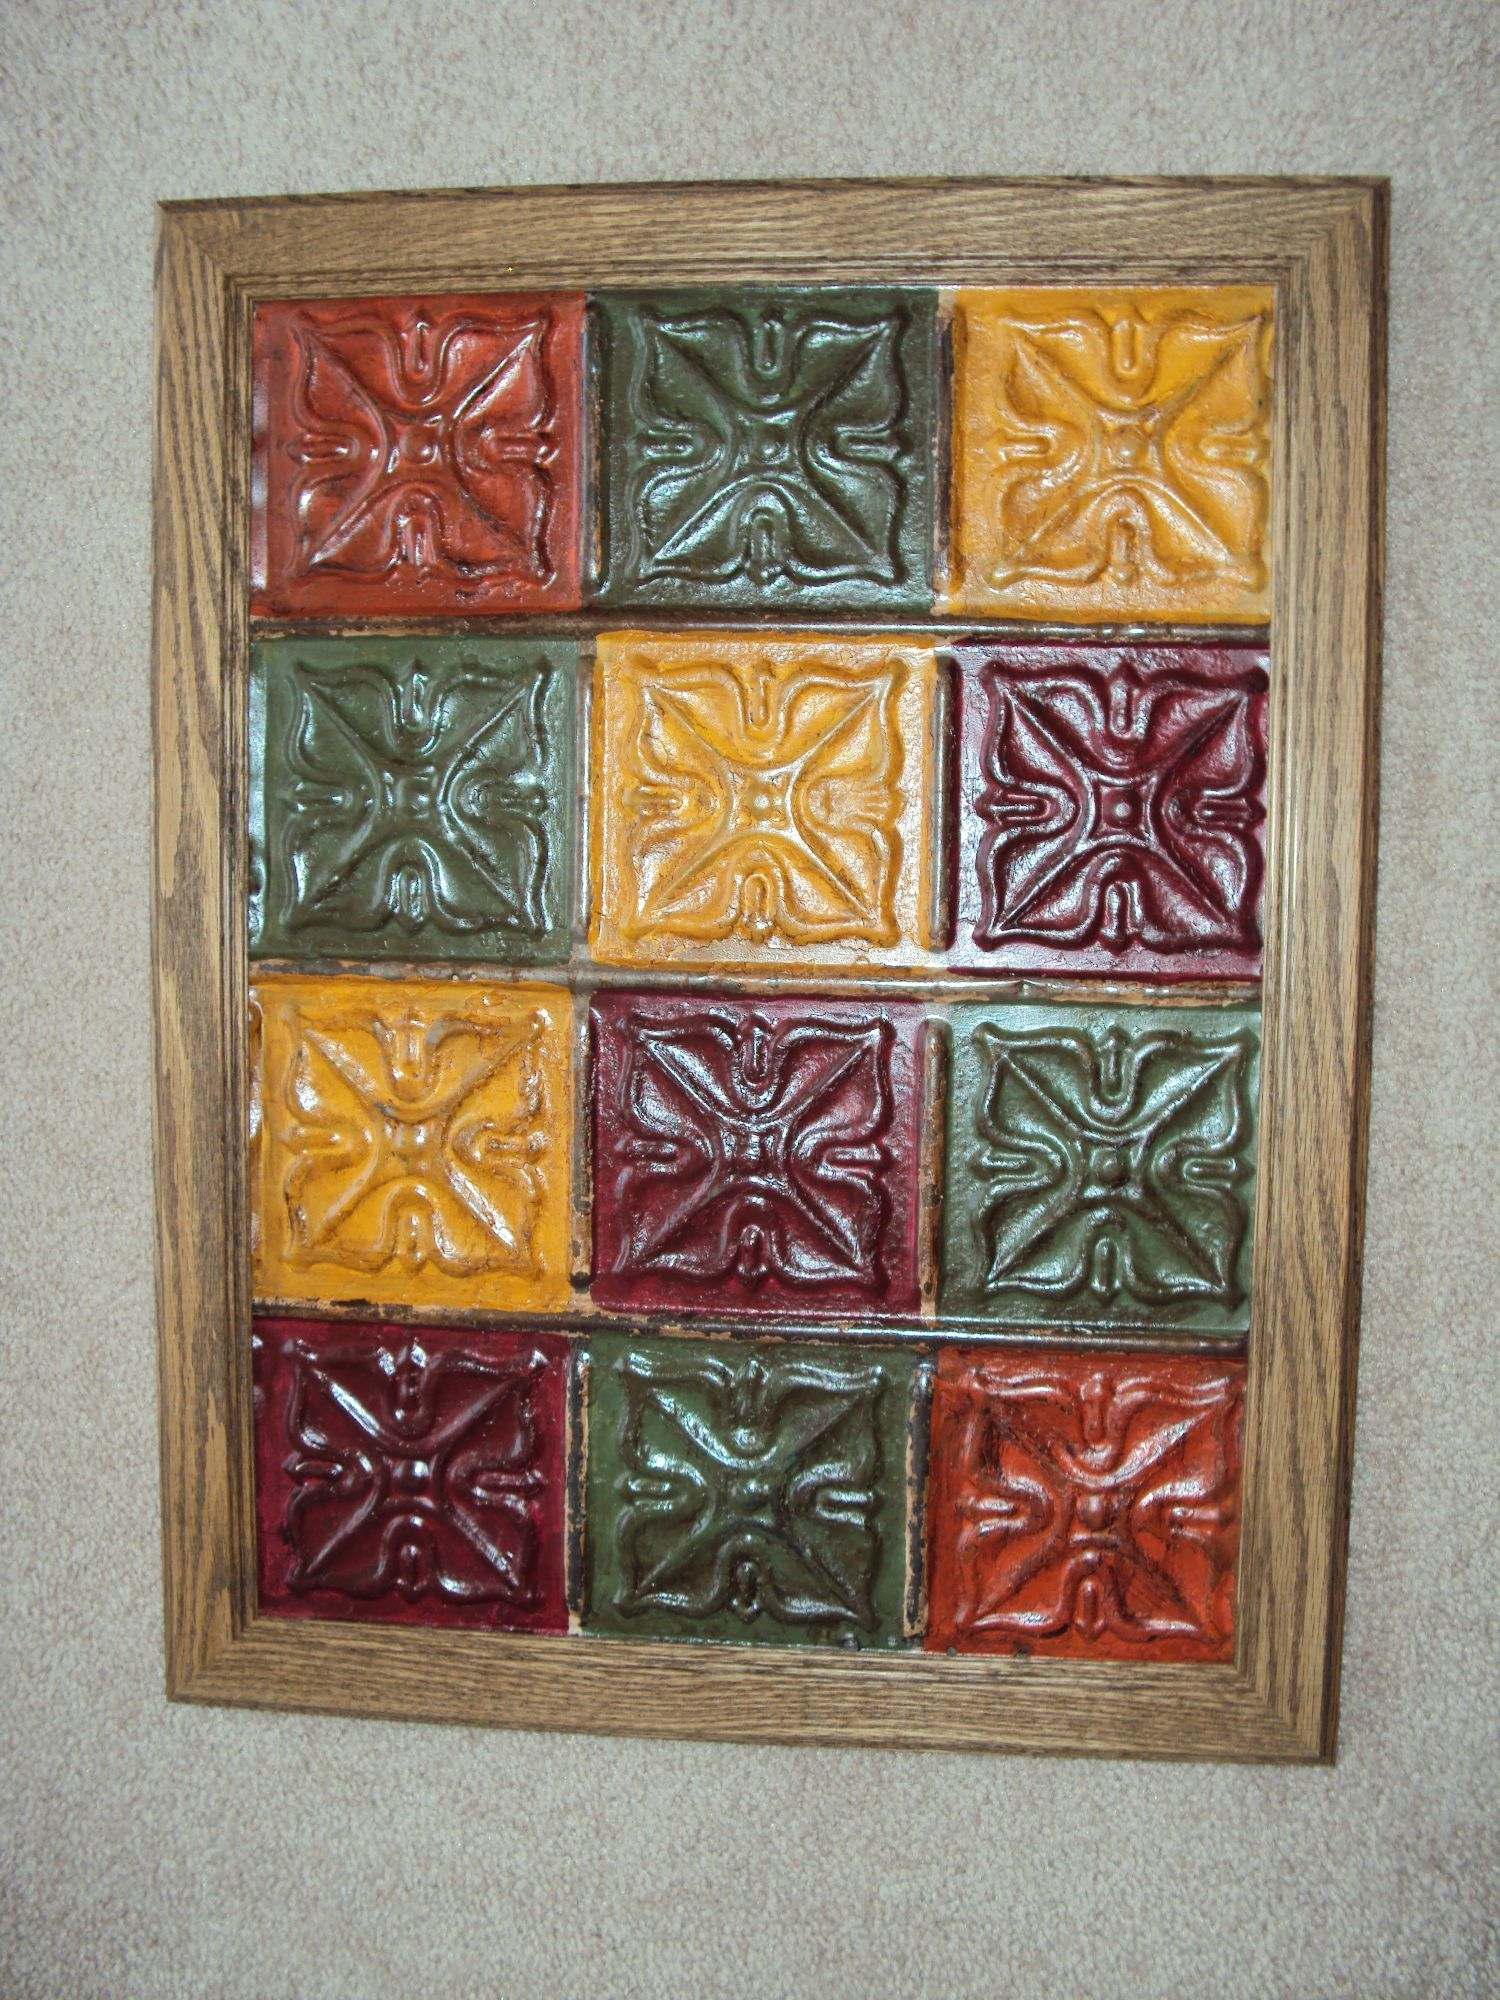 Old Tin Ceiling Tiles I Painted Sealed And Framed It Find Ideas On Facebook Flowers Lace Country Gifts